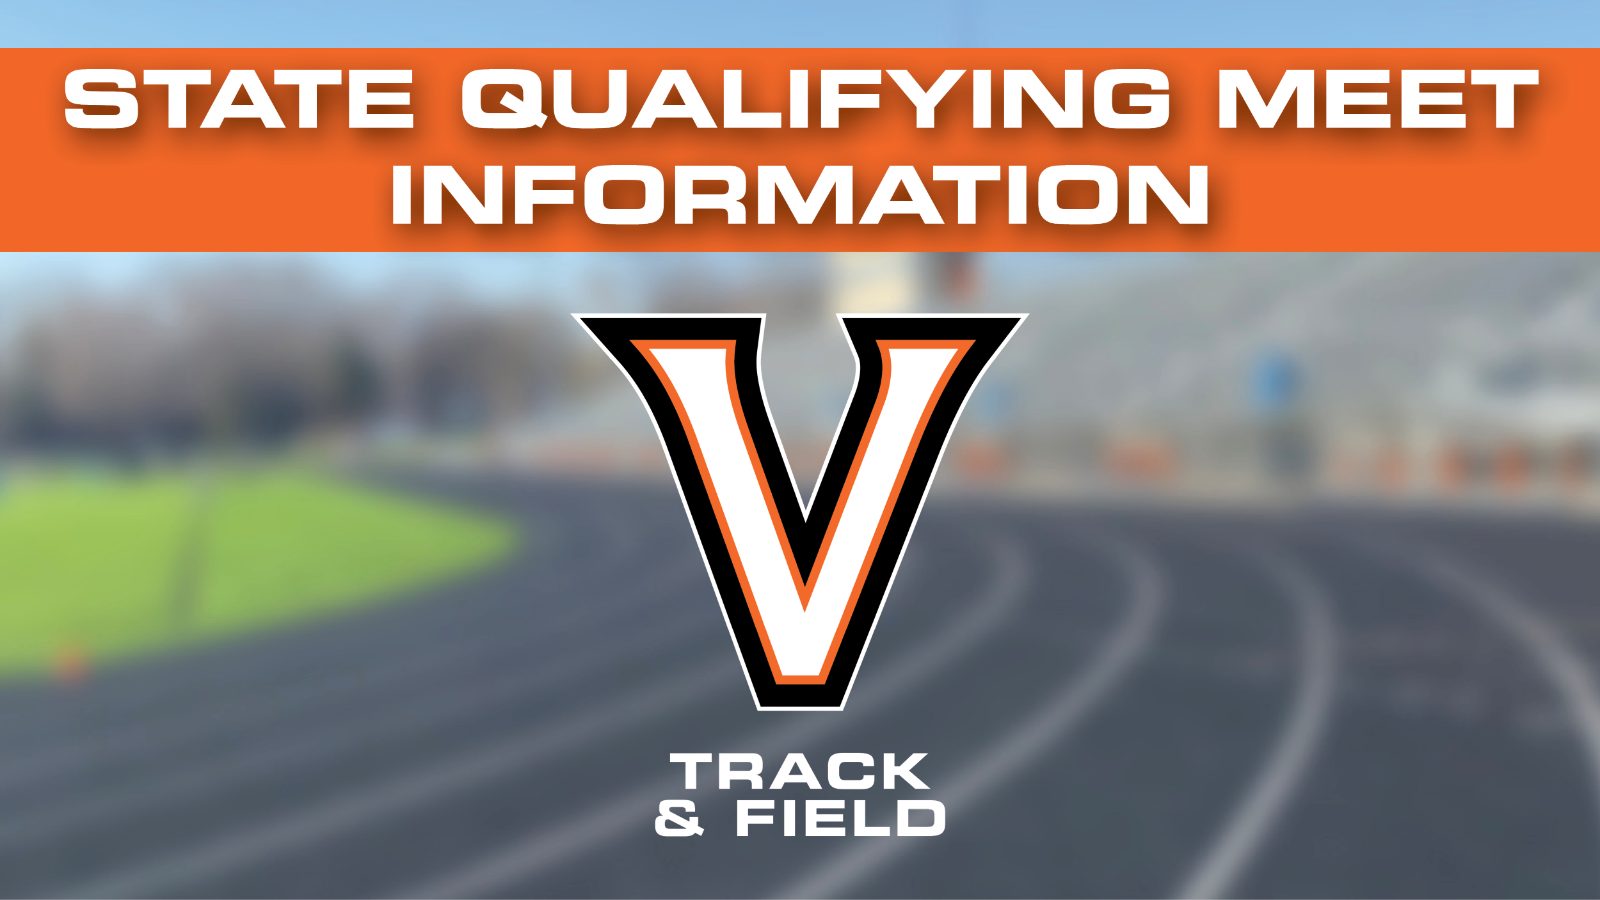 Information For Thursday's State Qualifying Meet